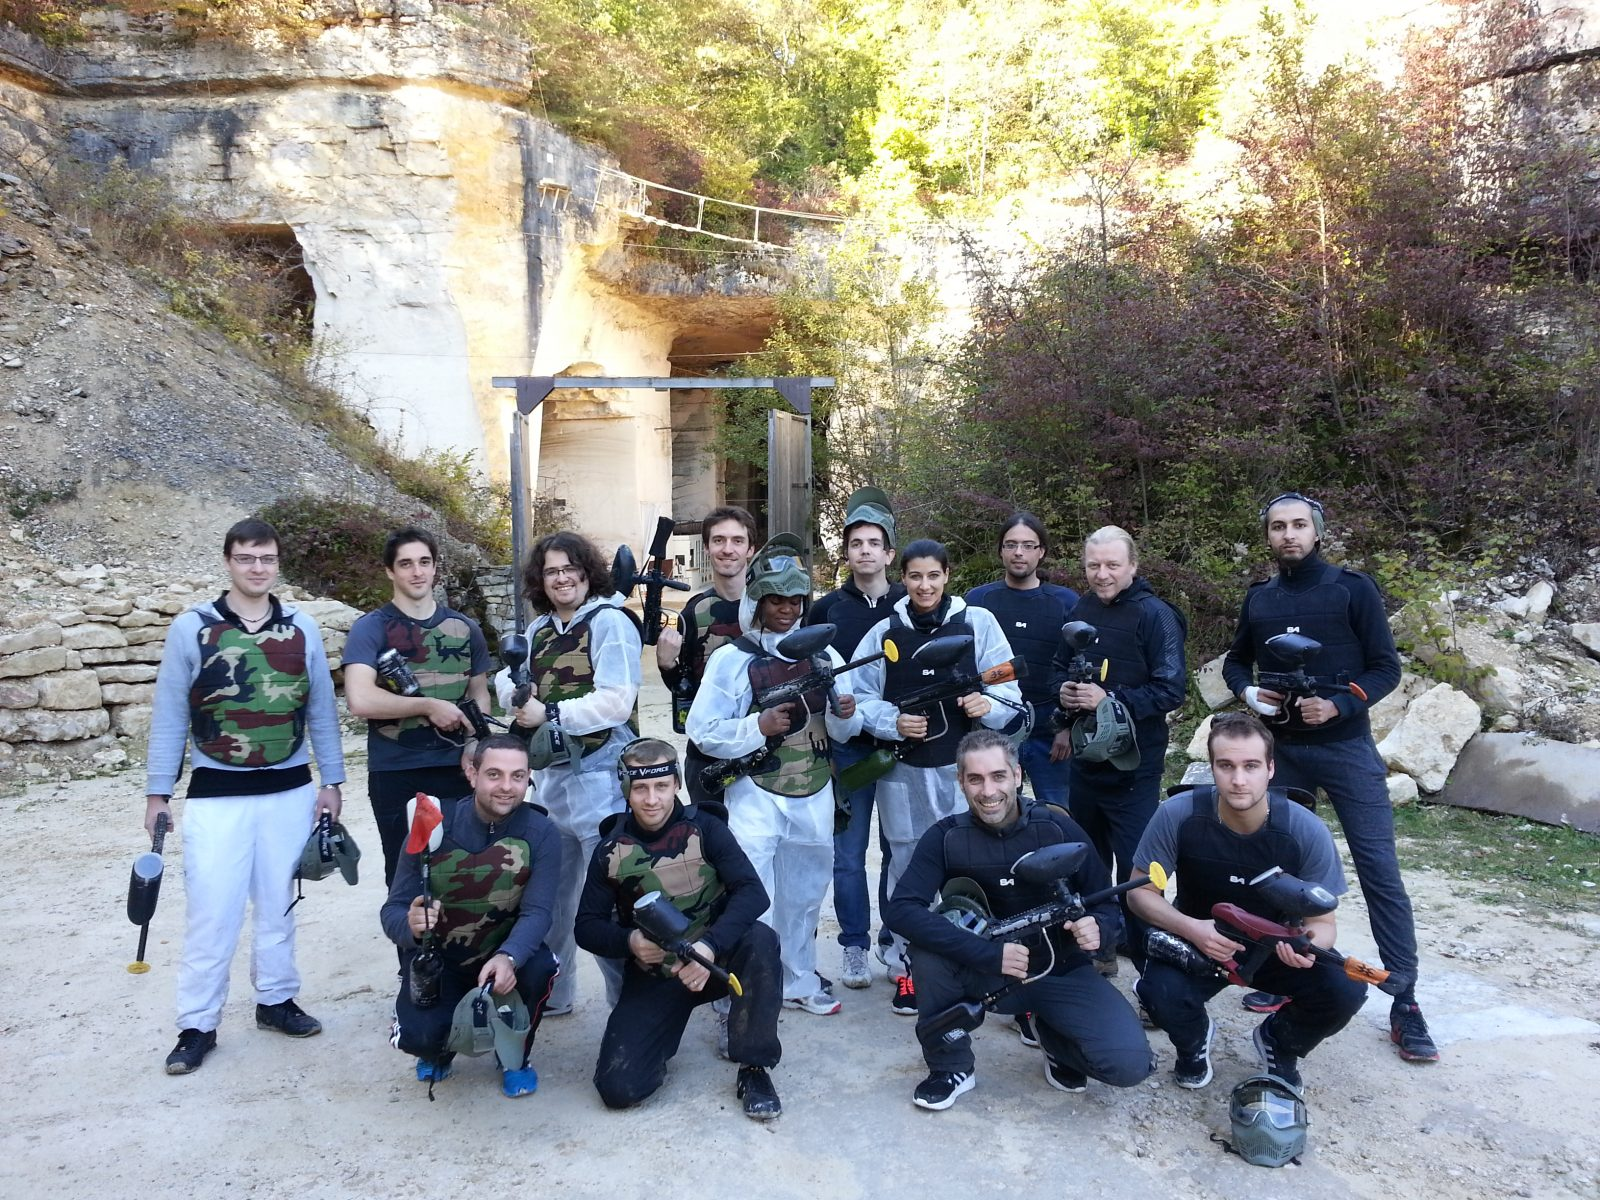 La Grotte de Champ Retard – Paintball